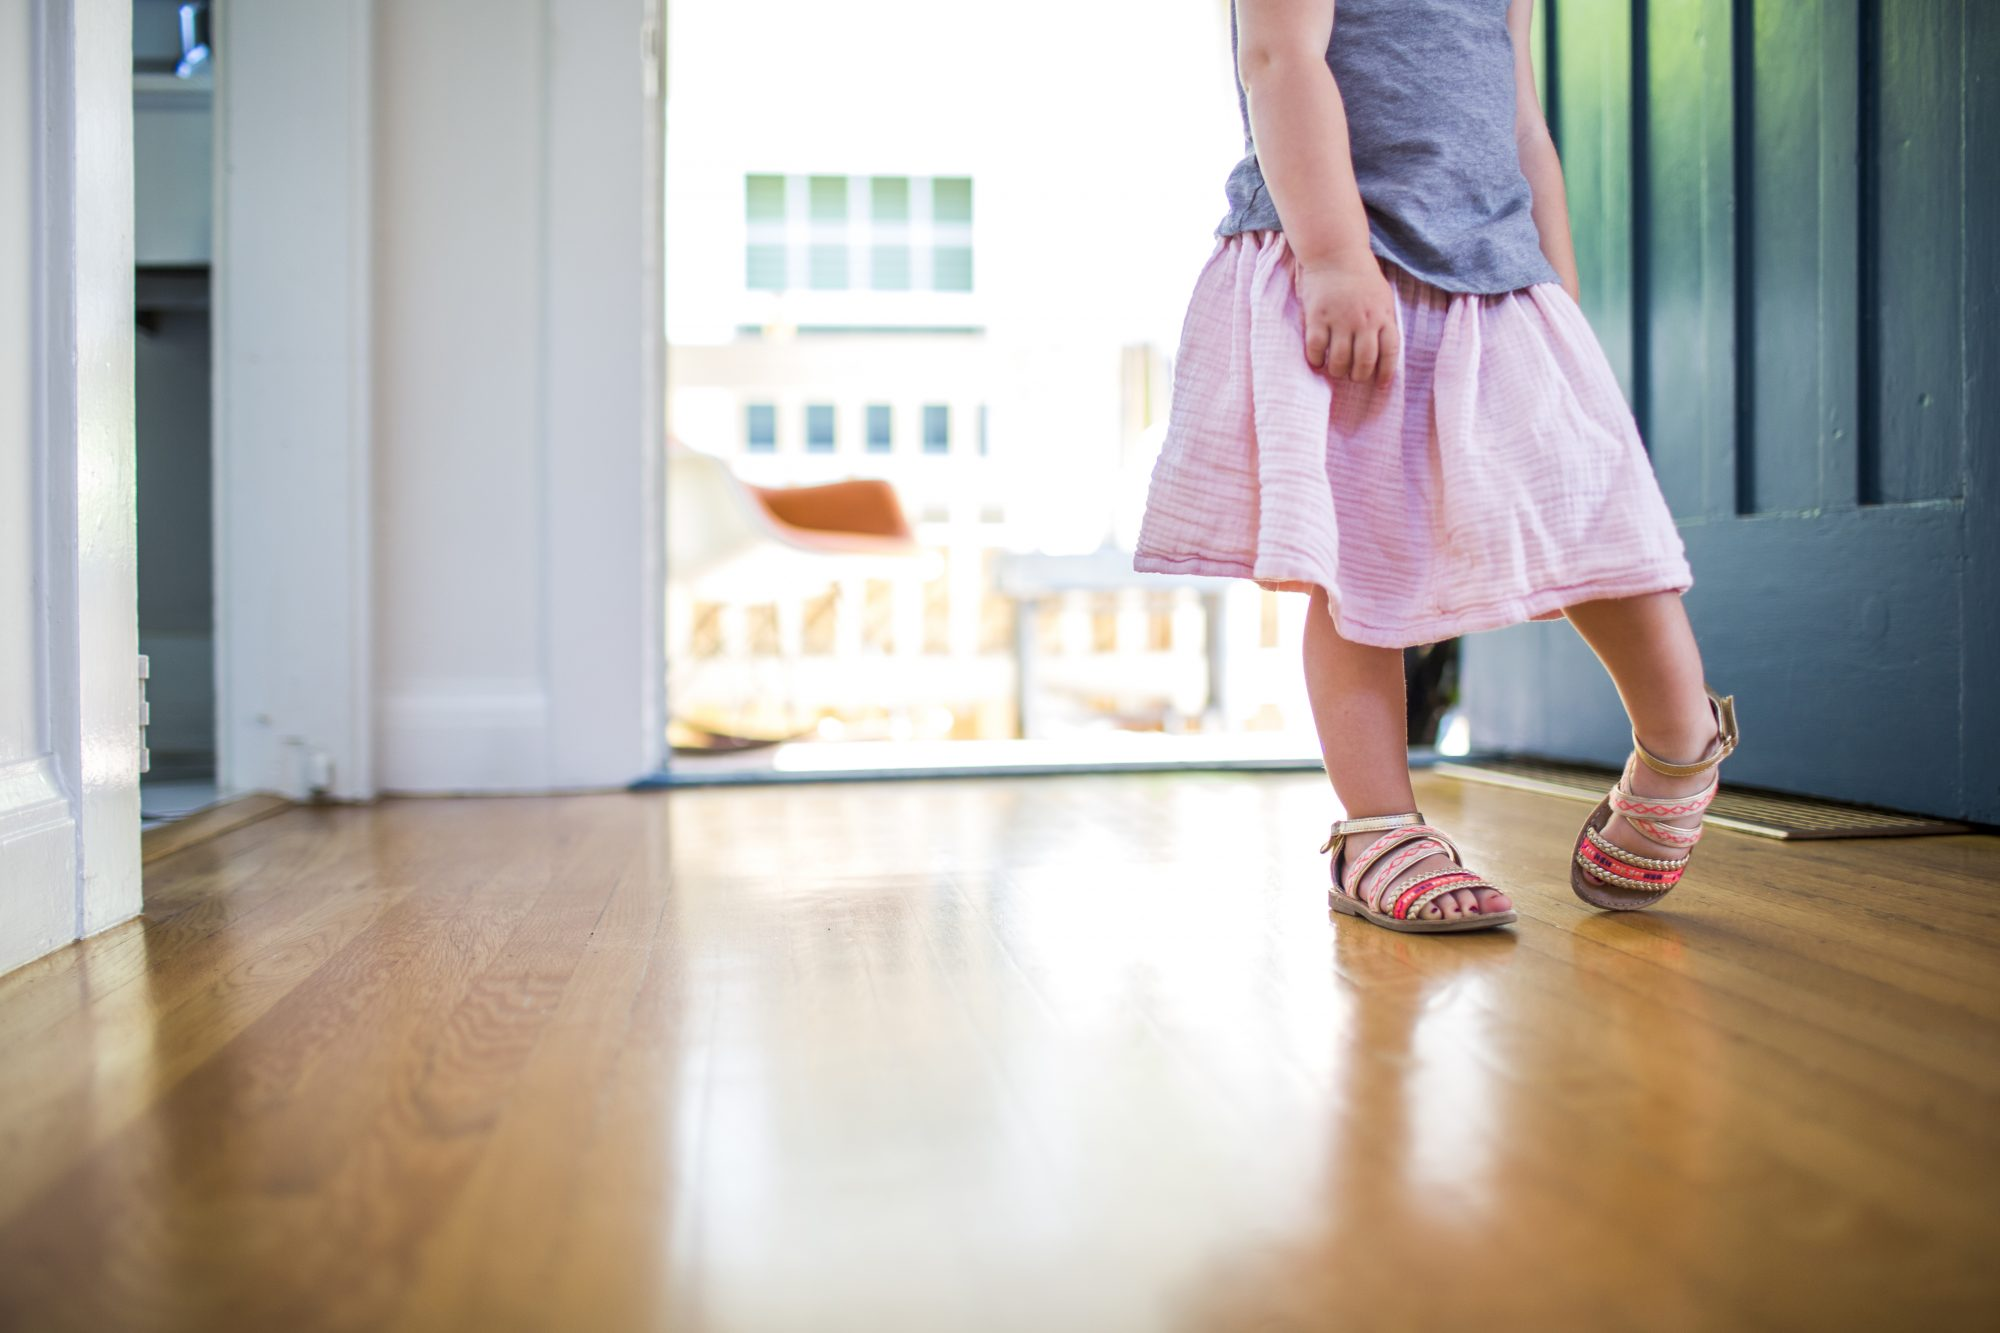 A 4-Year-Old Developed Sepsis After Shopping for Shoes Without Socks. Here's What Doctors Think